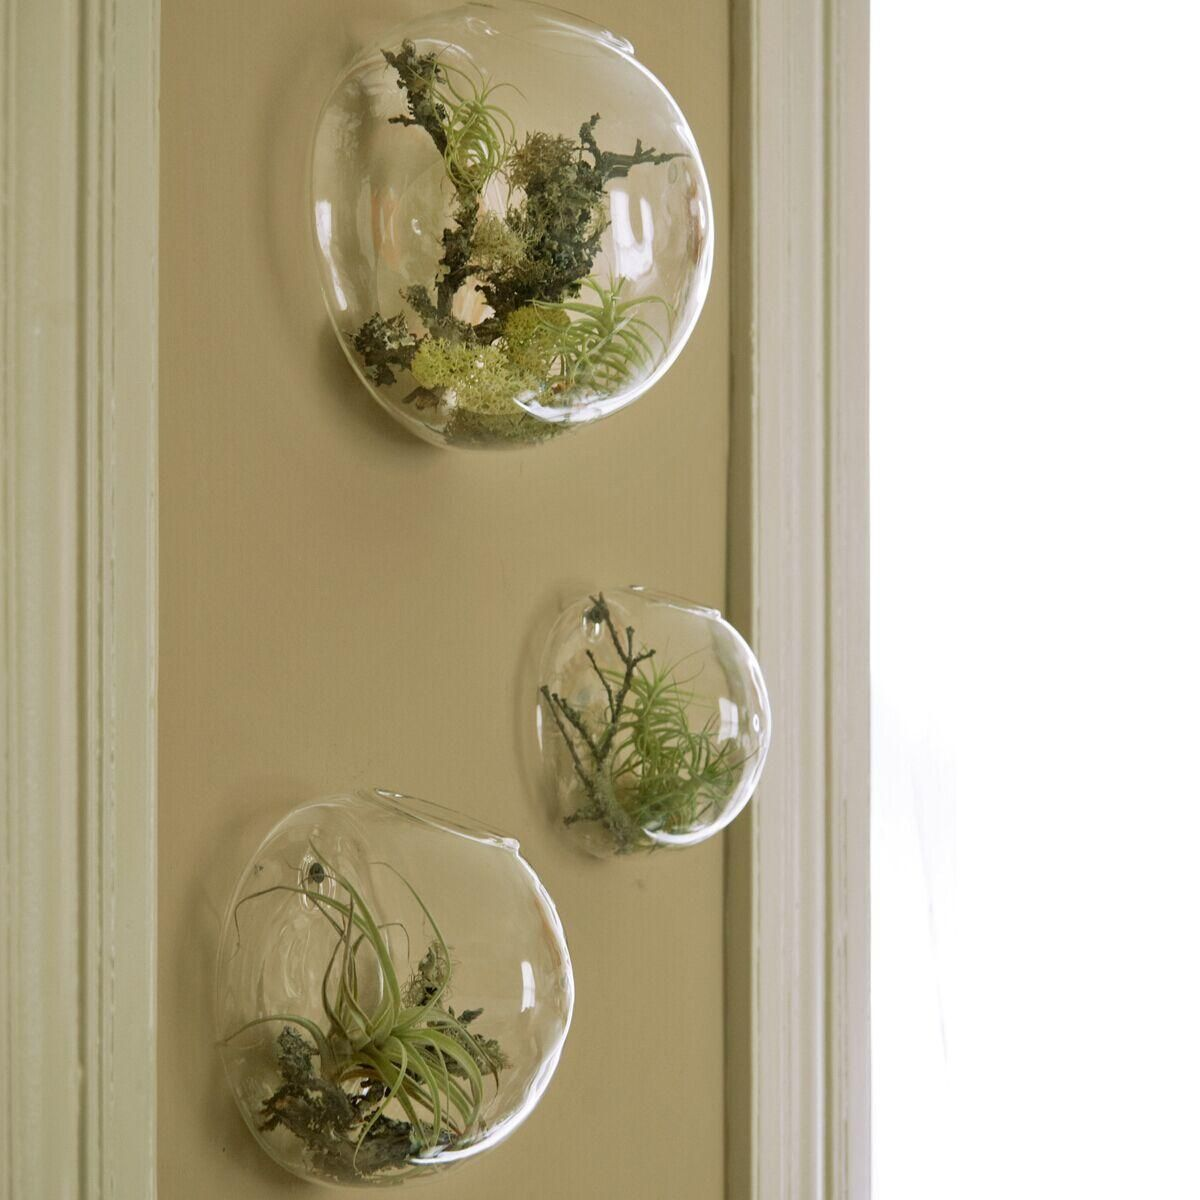 3pcsset wall bubble terrariums glass wall vase for flowersindoor 3pcsset wall bubble terrariums glass wall vase for flowersindoor plants wall mounted planter for succulents air plant holders home decor reviewsmspy